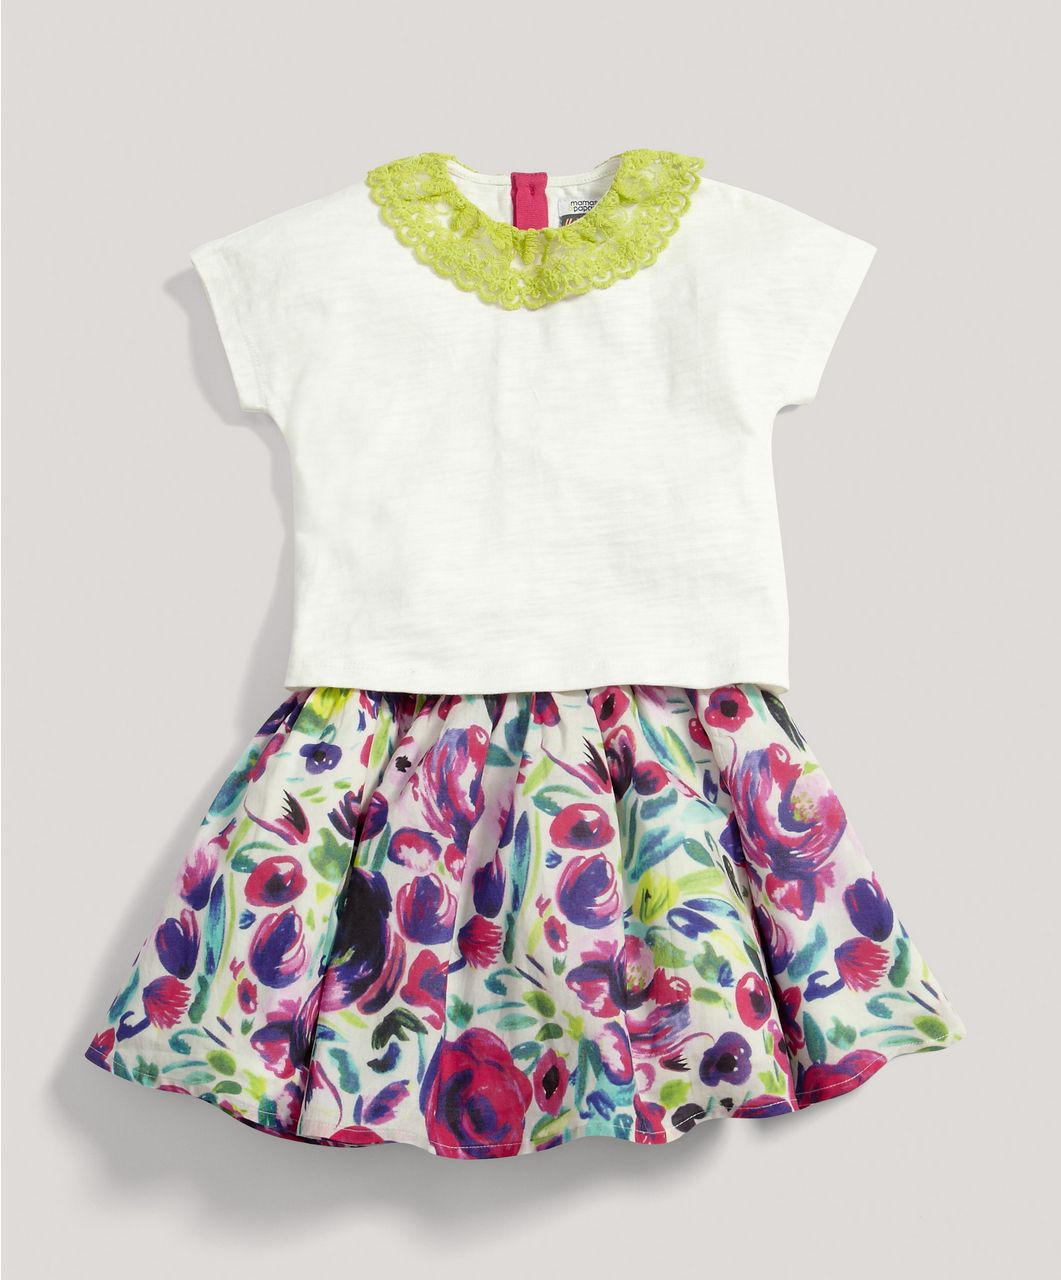 Girls Limited Edition Skirt and Tee Set